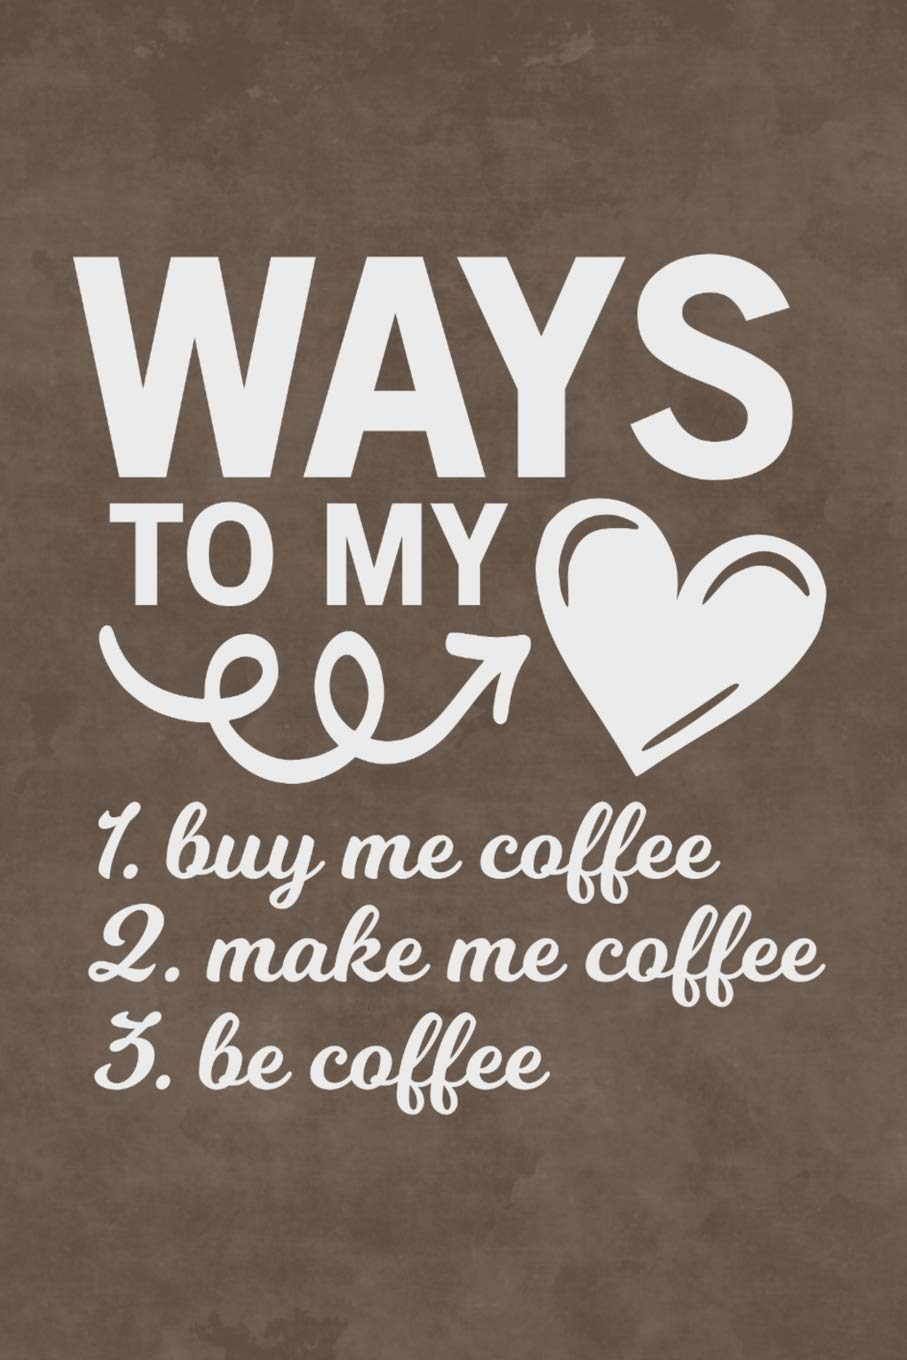 Coffee Journal Ways To My Heart Notebook Journal With Funny Coffee Quote 6 X 9 Diary Machelle Isabella 9781095424100 Amazon Com Books